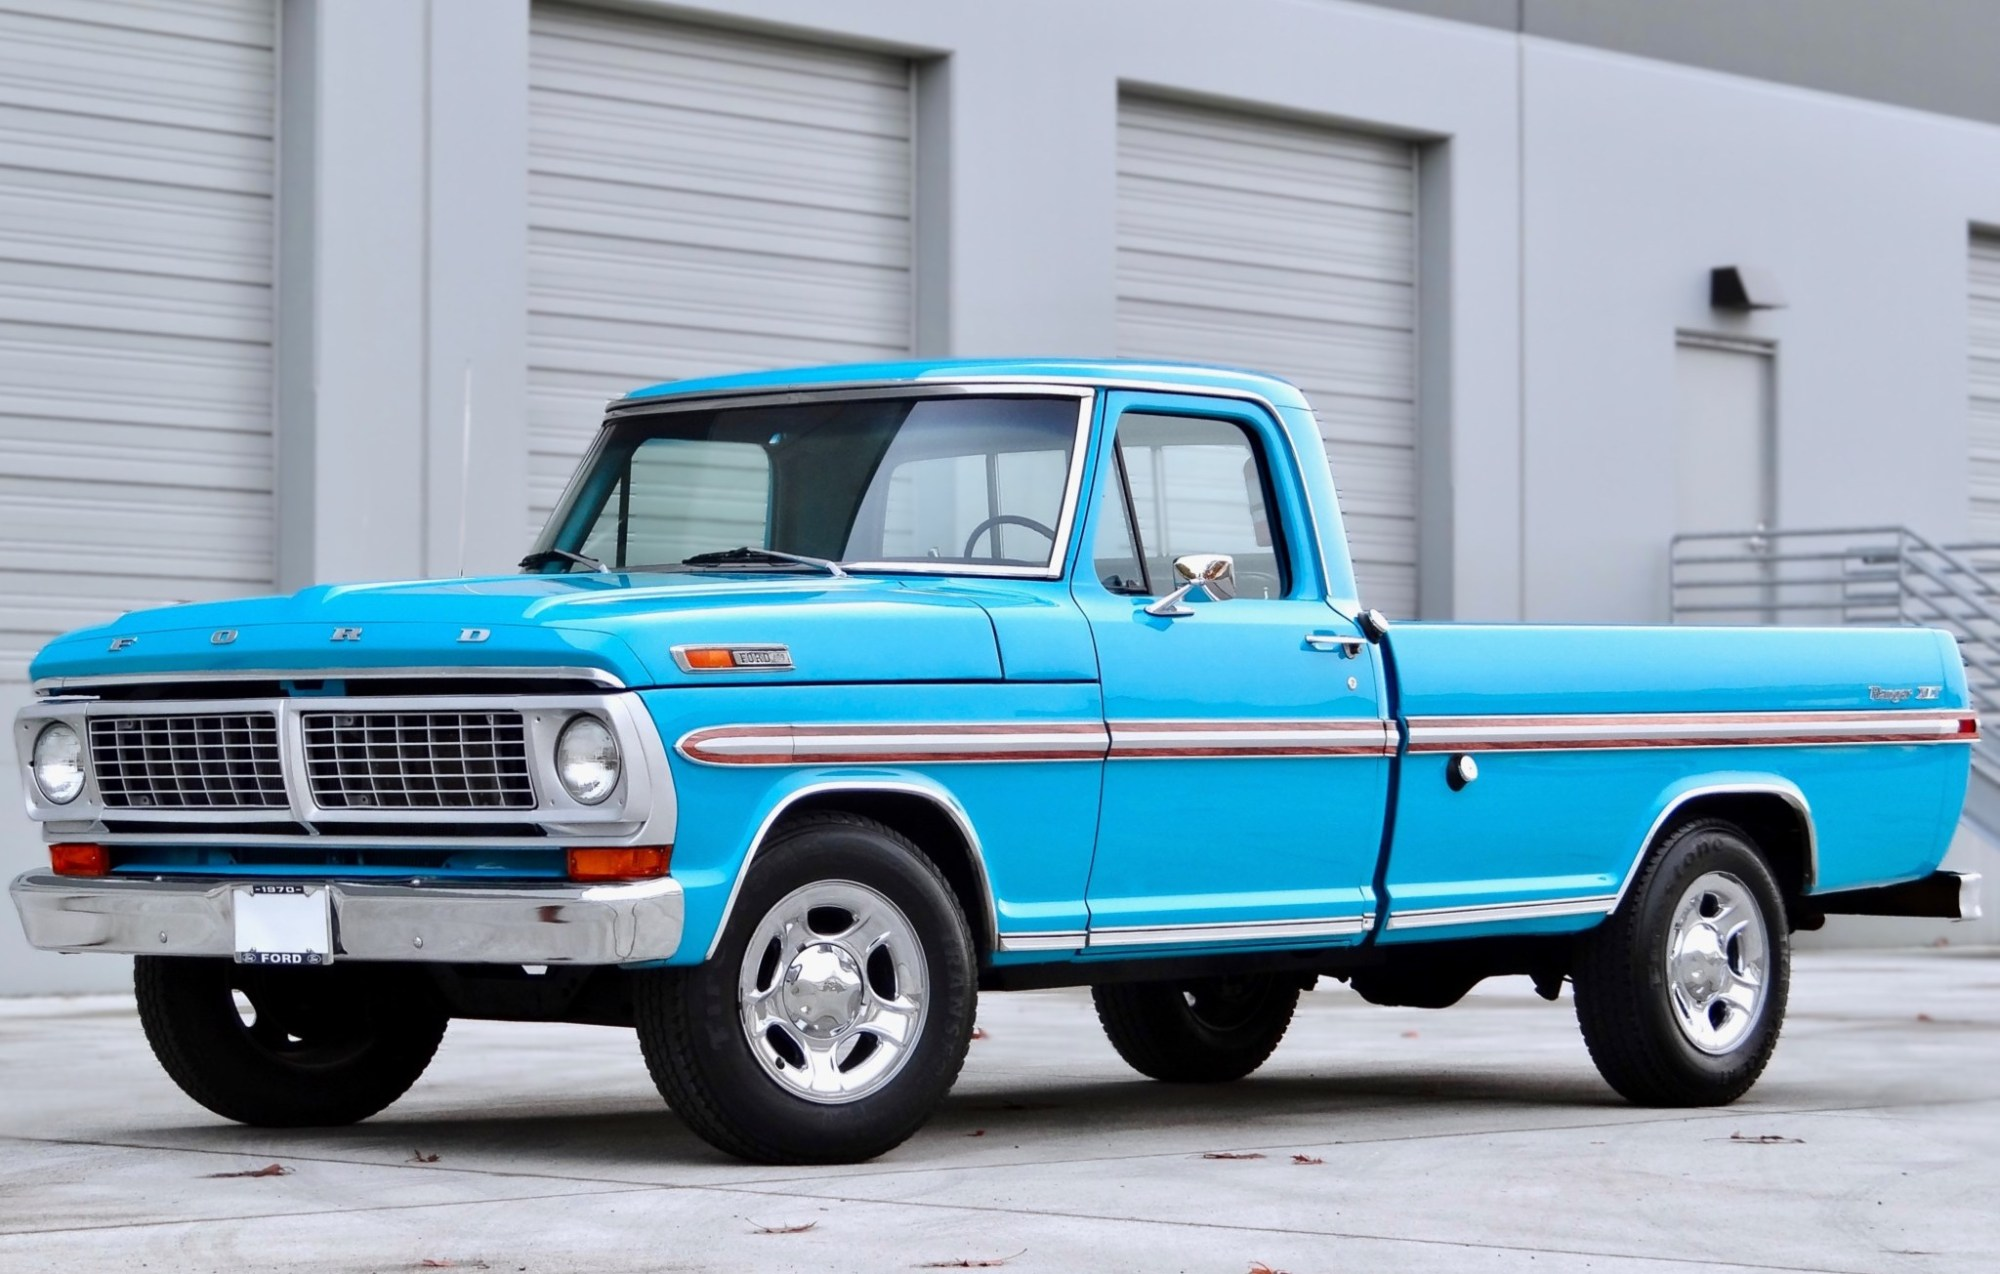 hight resolution of 1970 ford f 100 for sale on bat auctions sold for 15 500 on january 15 2019 lot 15 538 bring a trailer